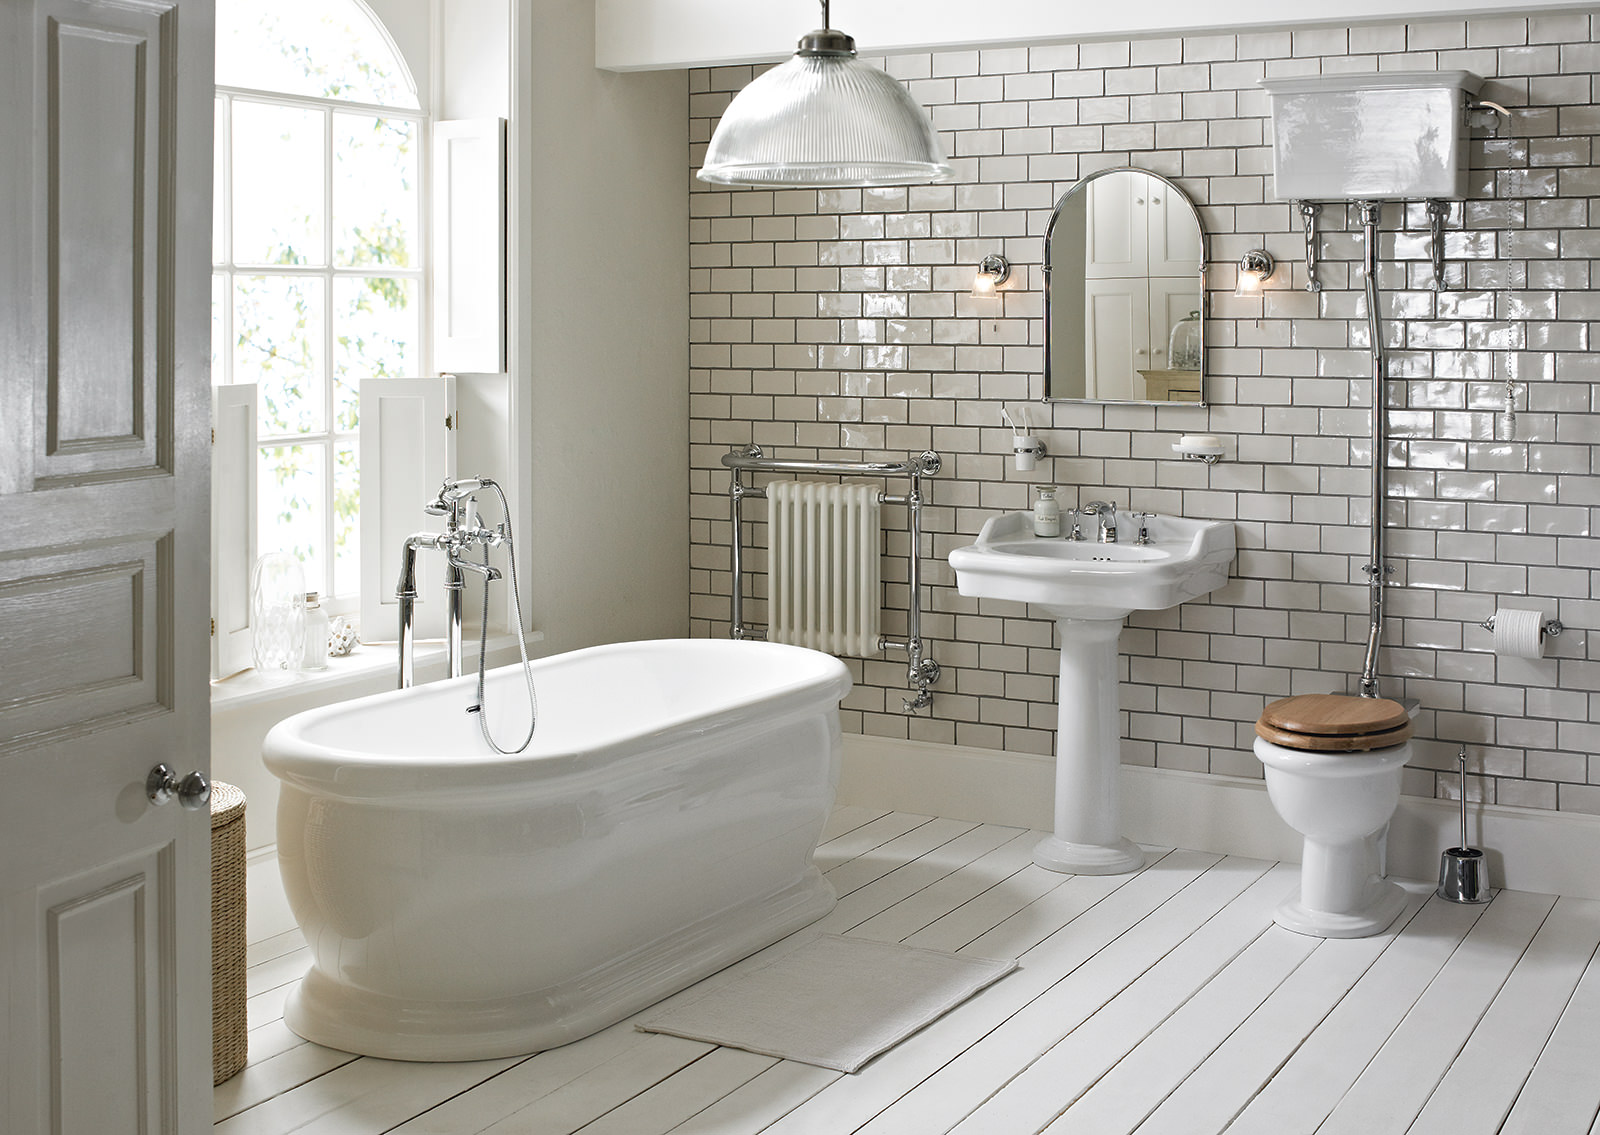 Heritage victoria high level wc and cistern with flush pack for Bathroom ideas uk 2015